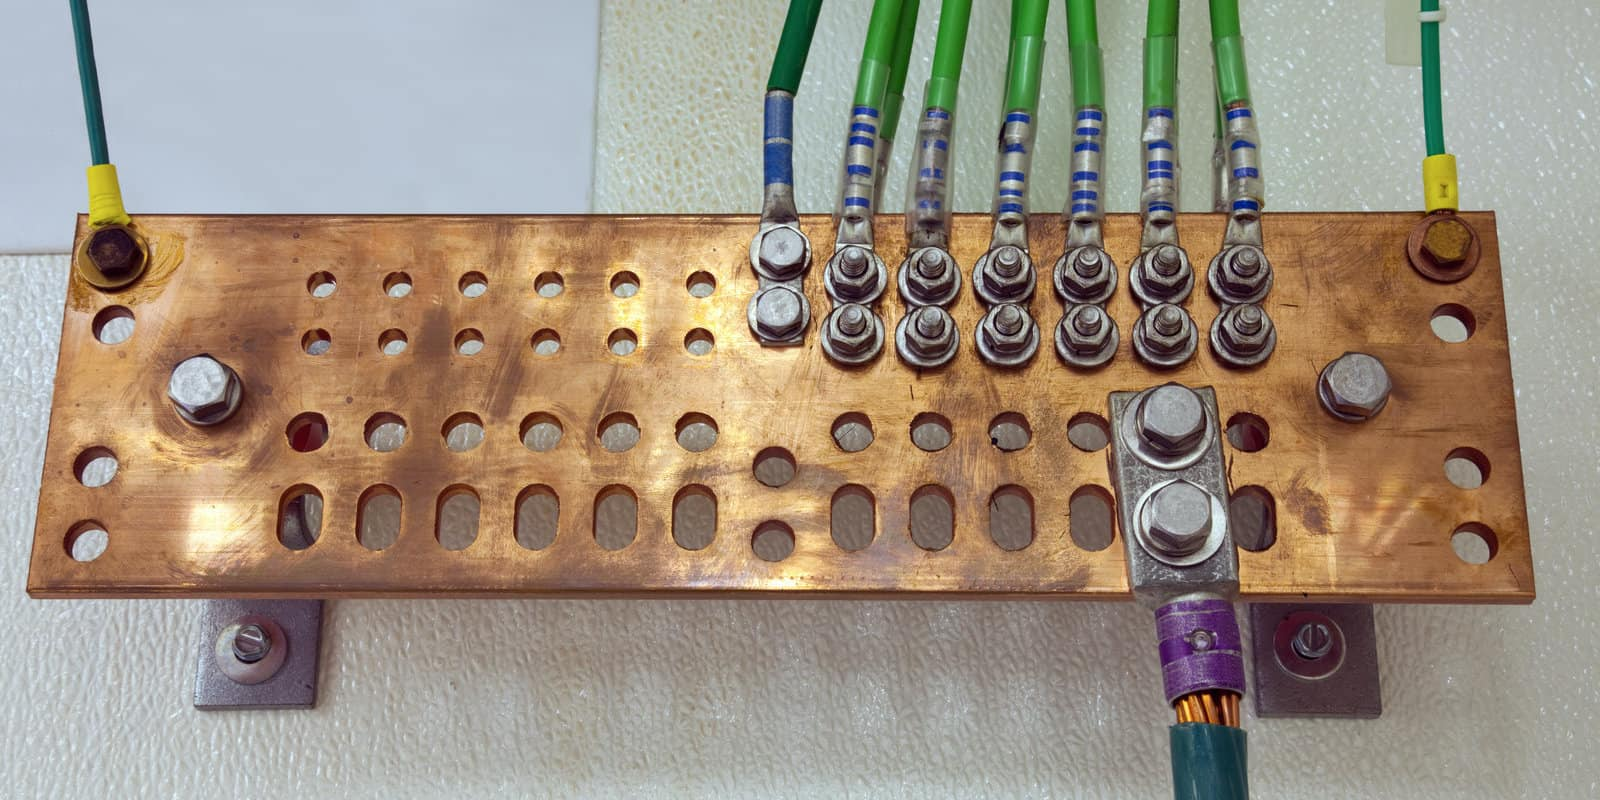 grounding and earthing products like this grounding socket